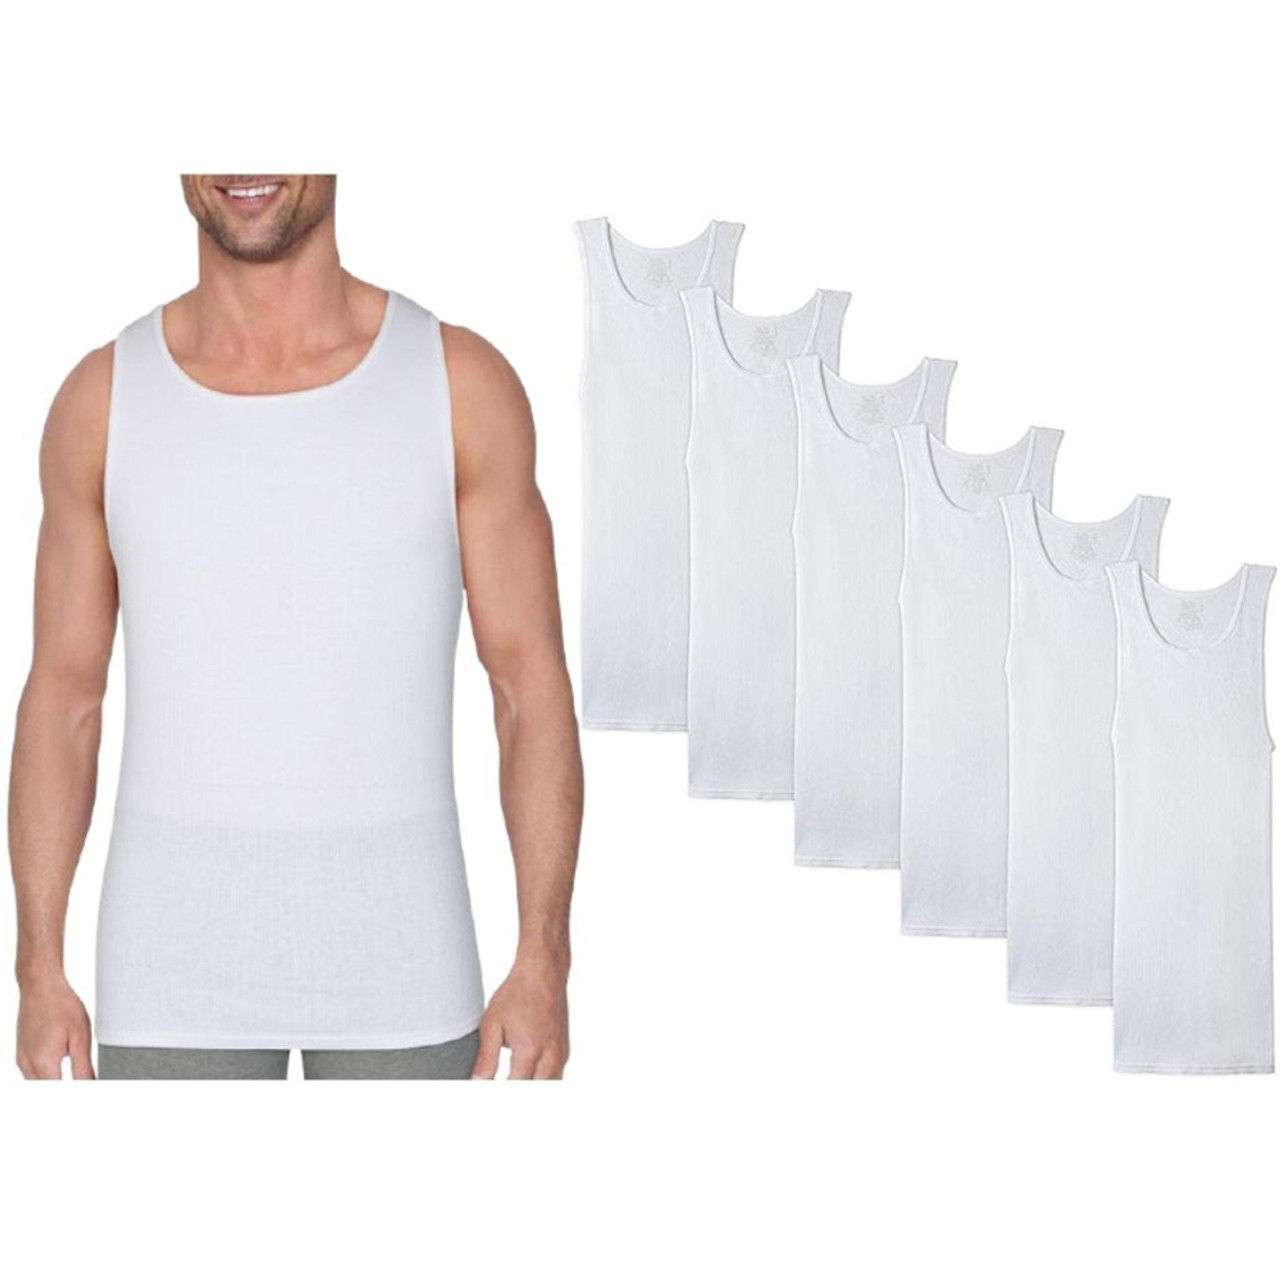 Men's Cotton Ribbed Tank Top (6-Pack) $18.99 (73% OFF)